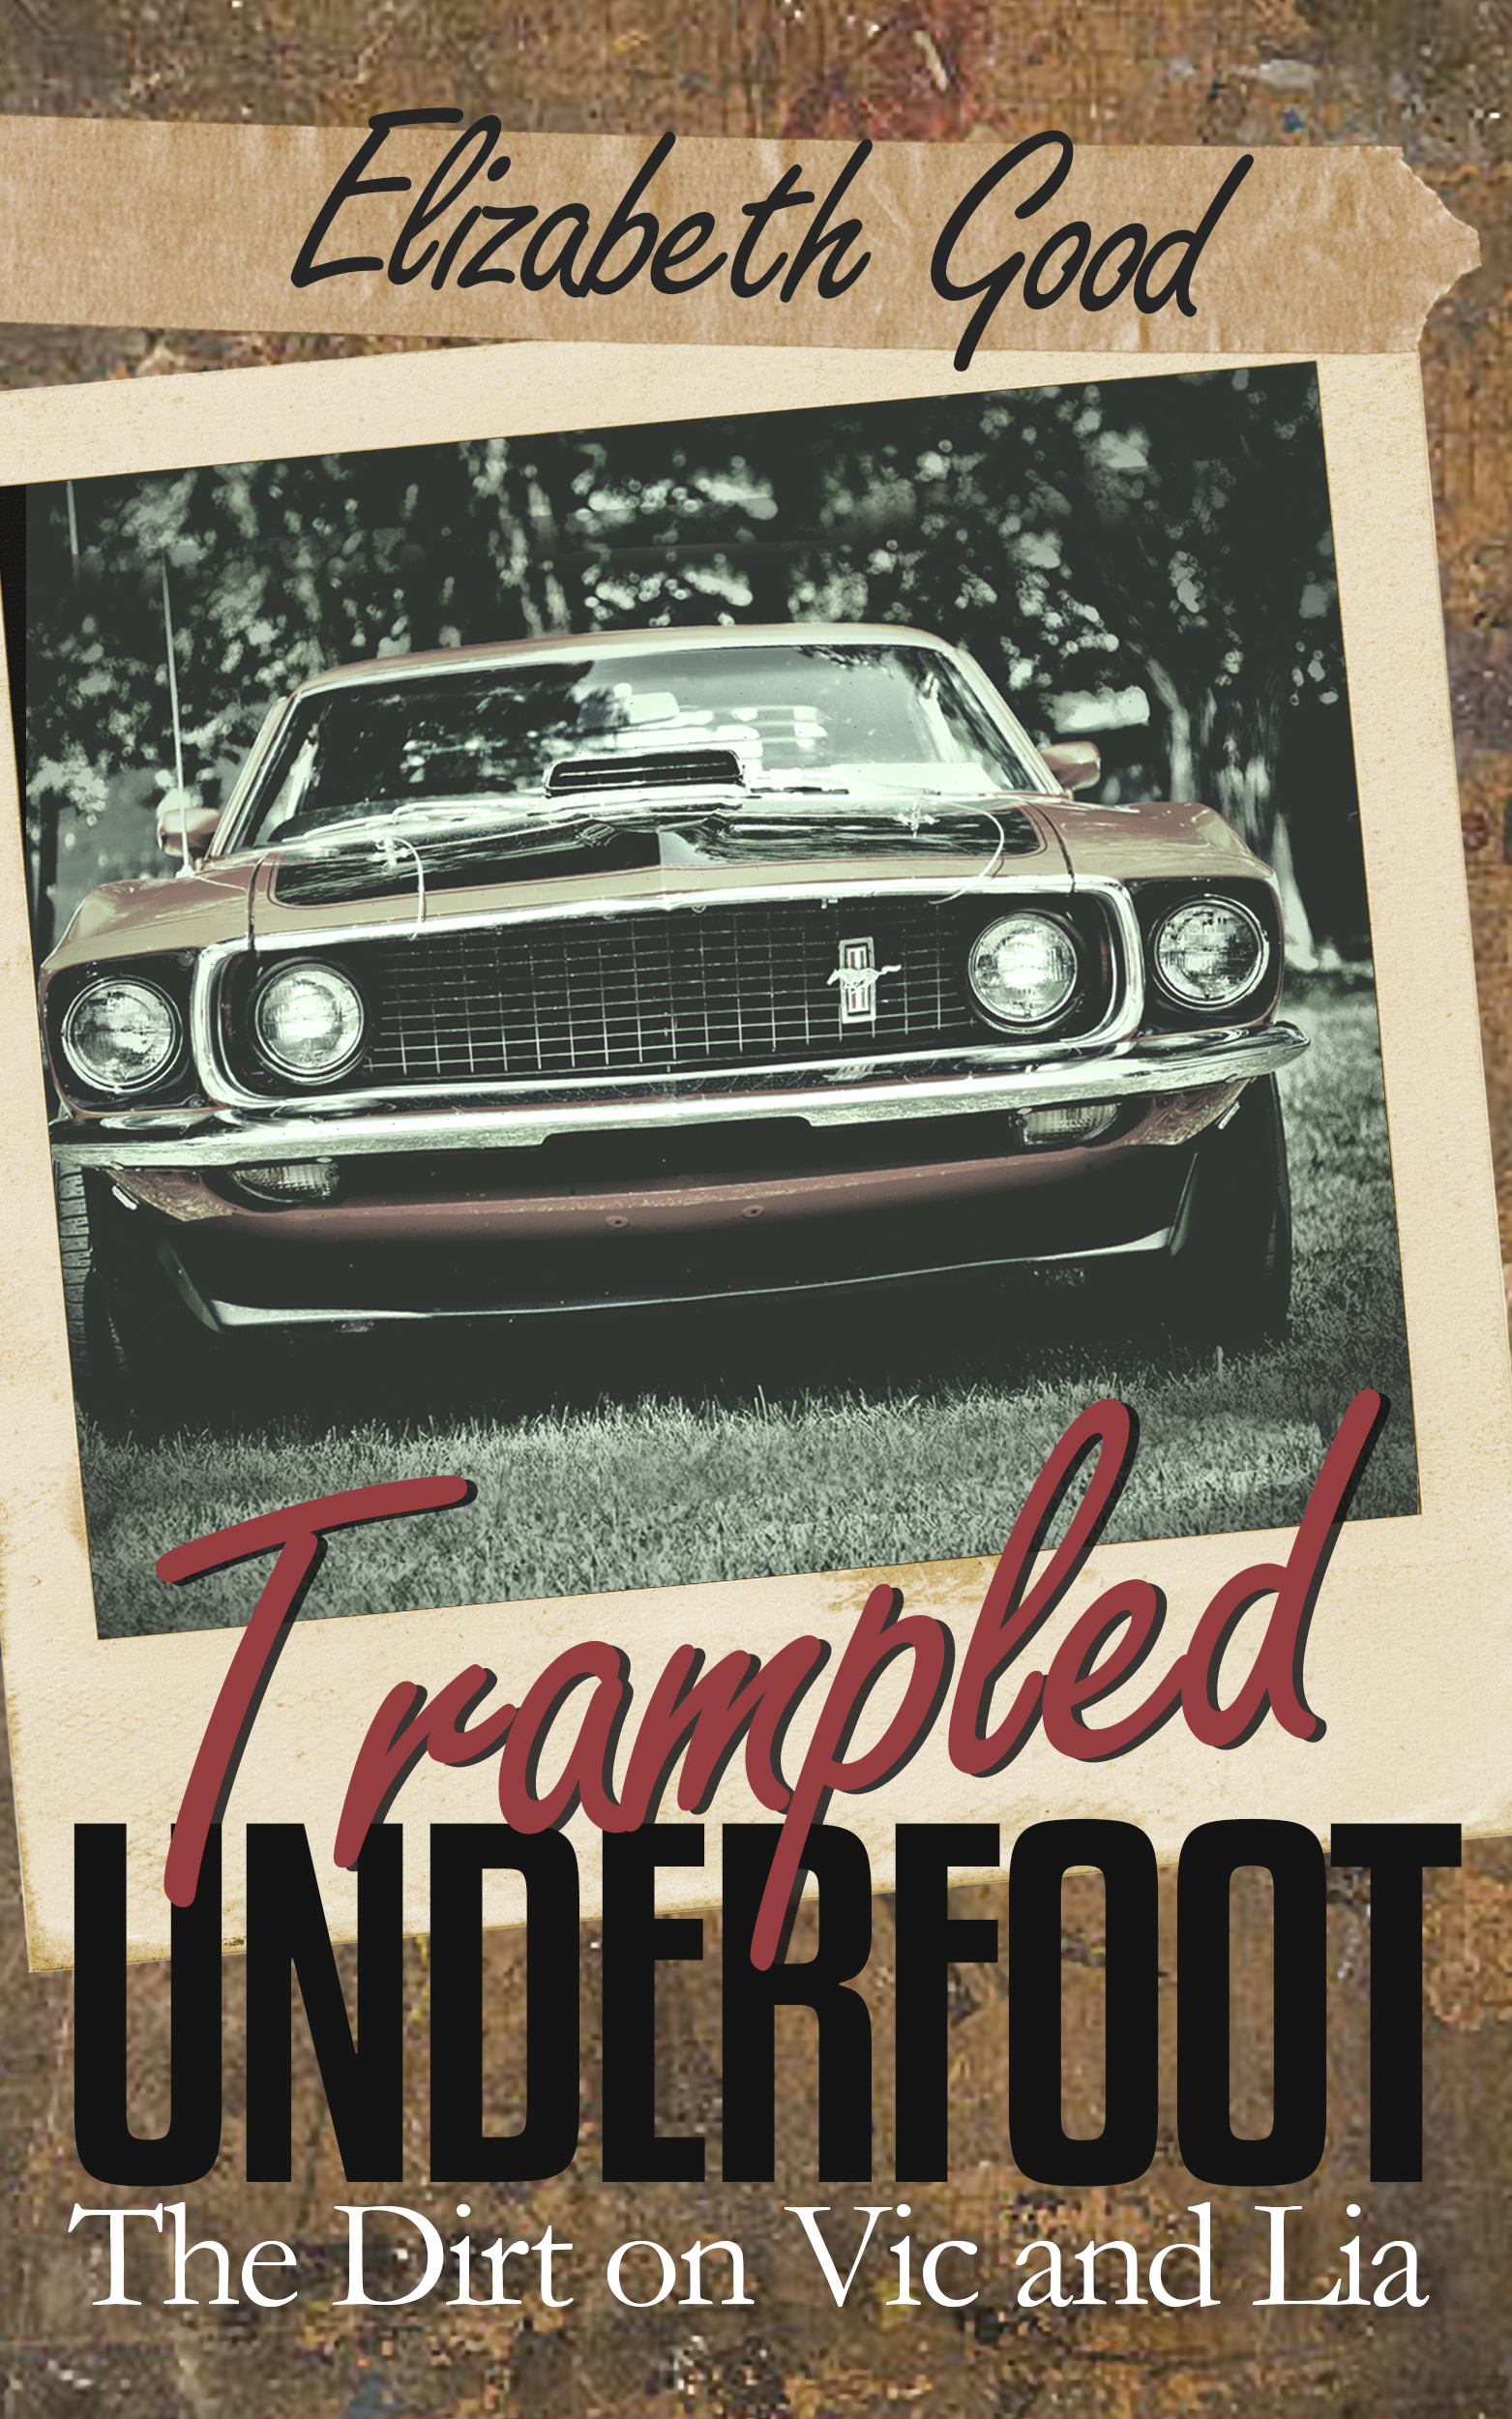 Tramped Underfoot by Elizabeth Good